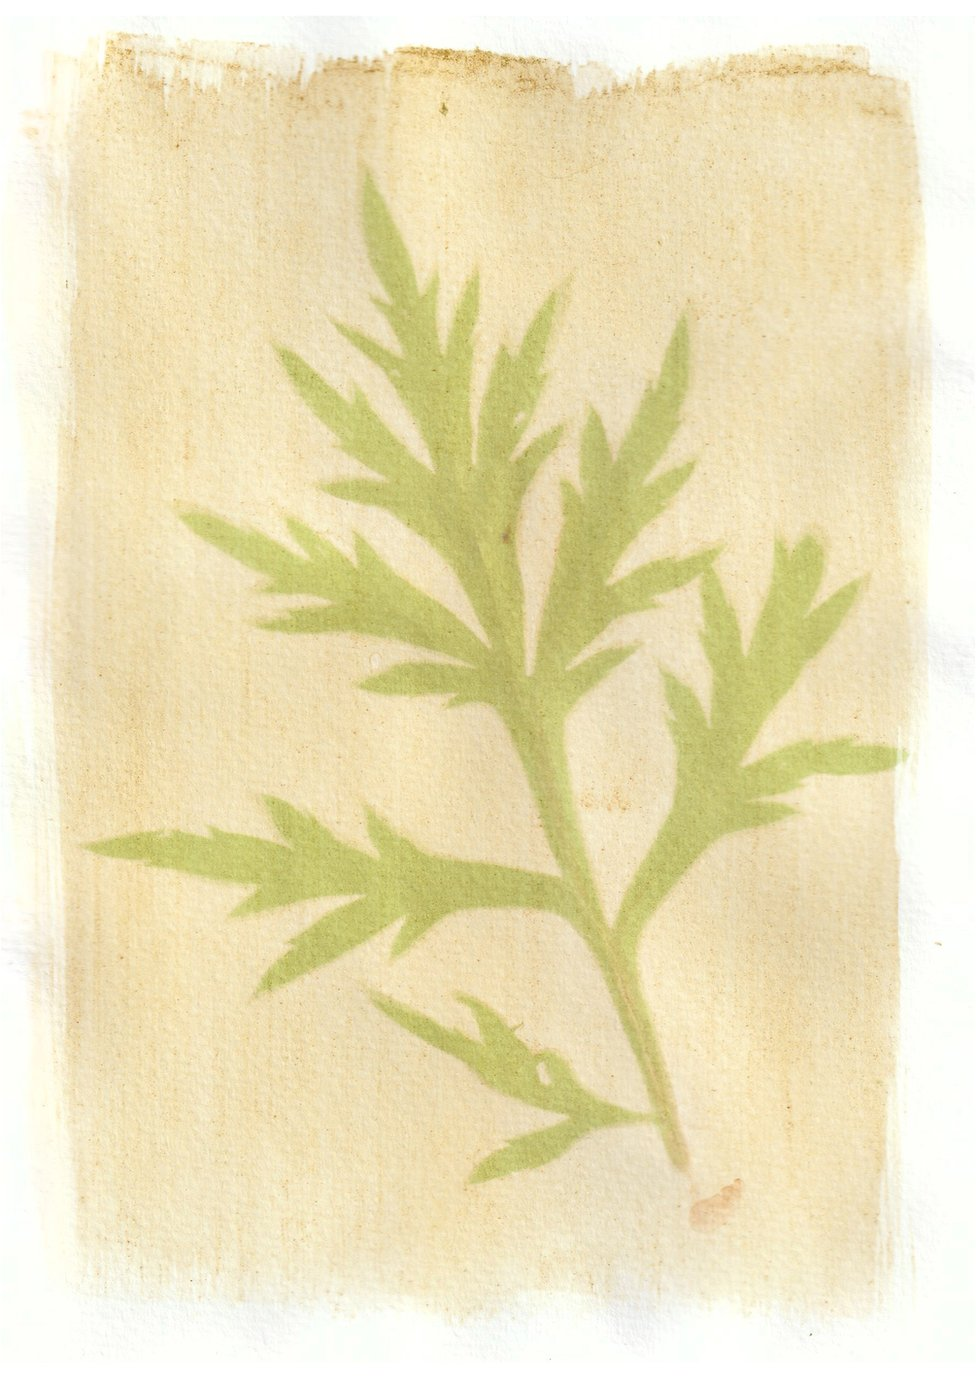 An anthotype print of a green piece of plant foliage